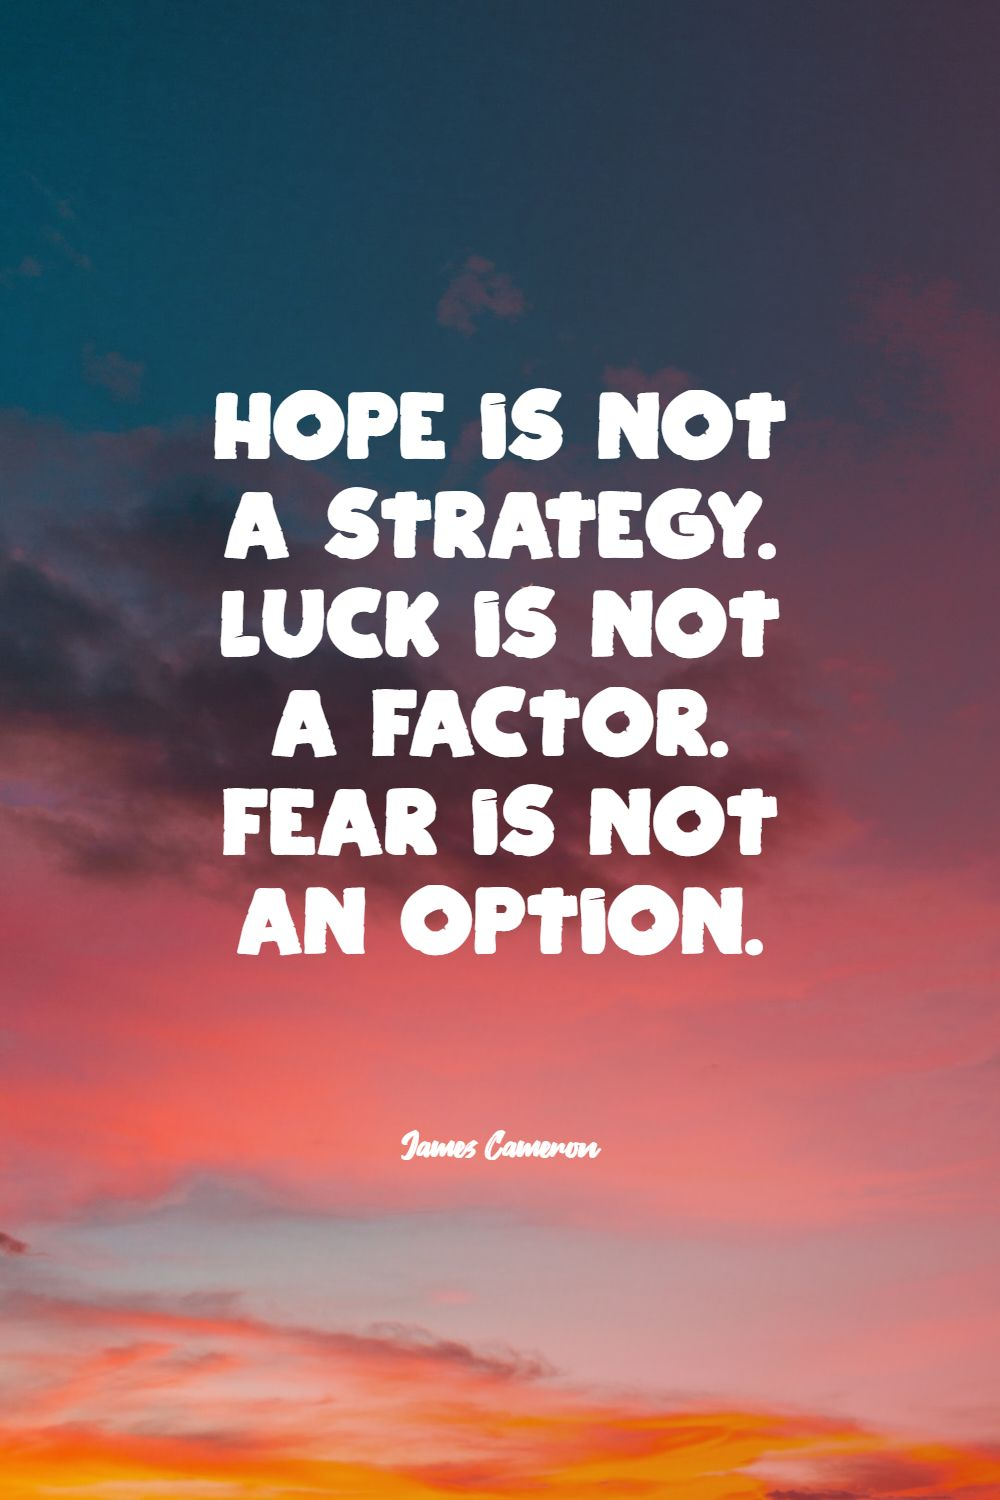 Quotes image of Hope is not a strategy. Luck is not a factor. Fear is not an option.